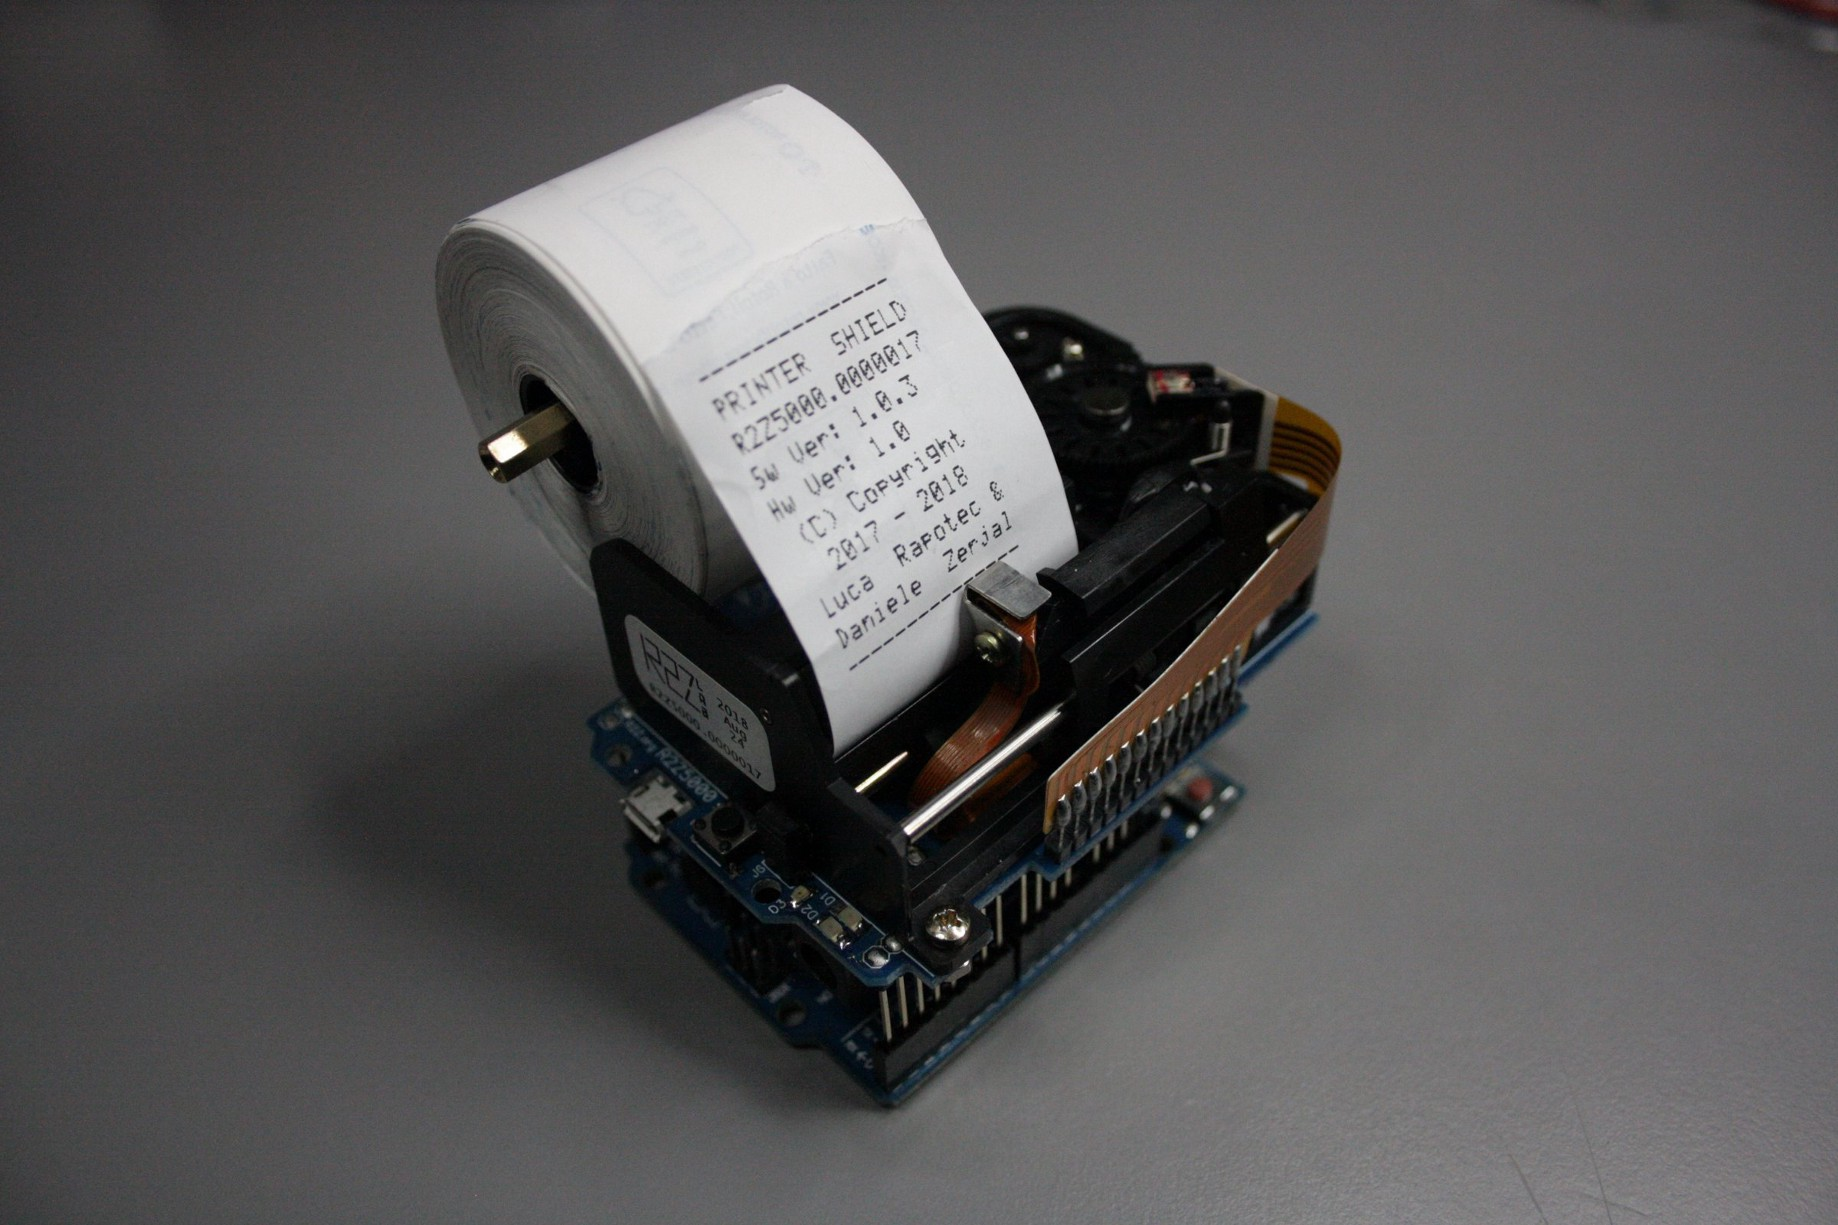 Thermal Printer Mounts Directly to an Arduino or Raspberry Pi